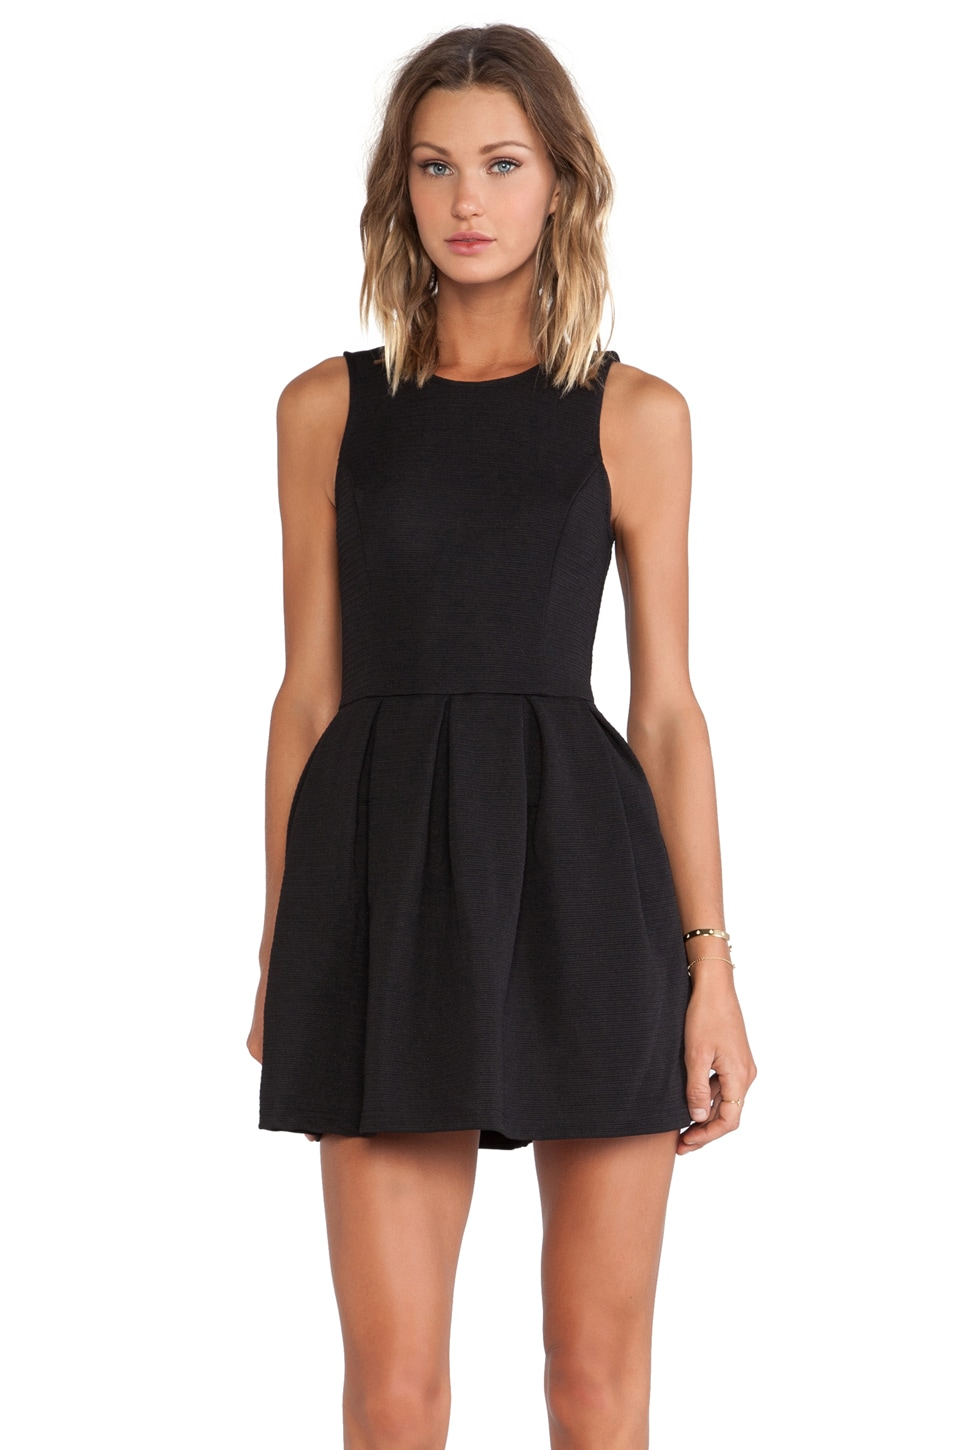 ISLA_CO Eye Candy Dress in Black